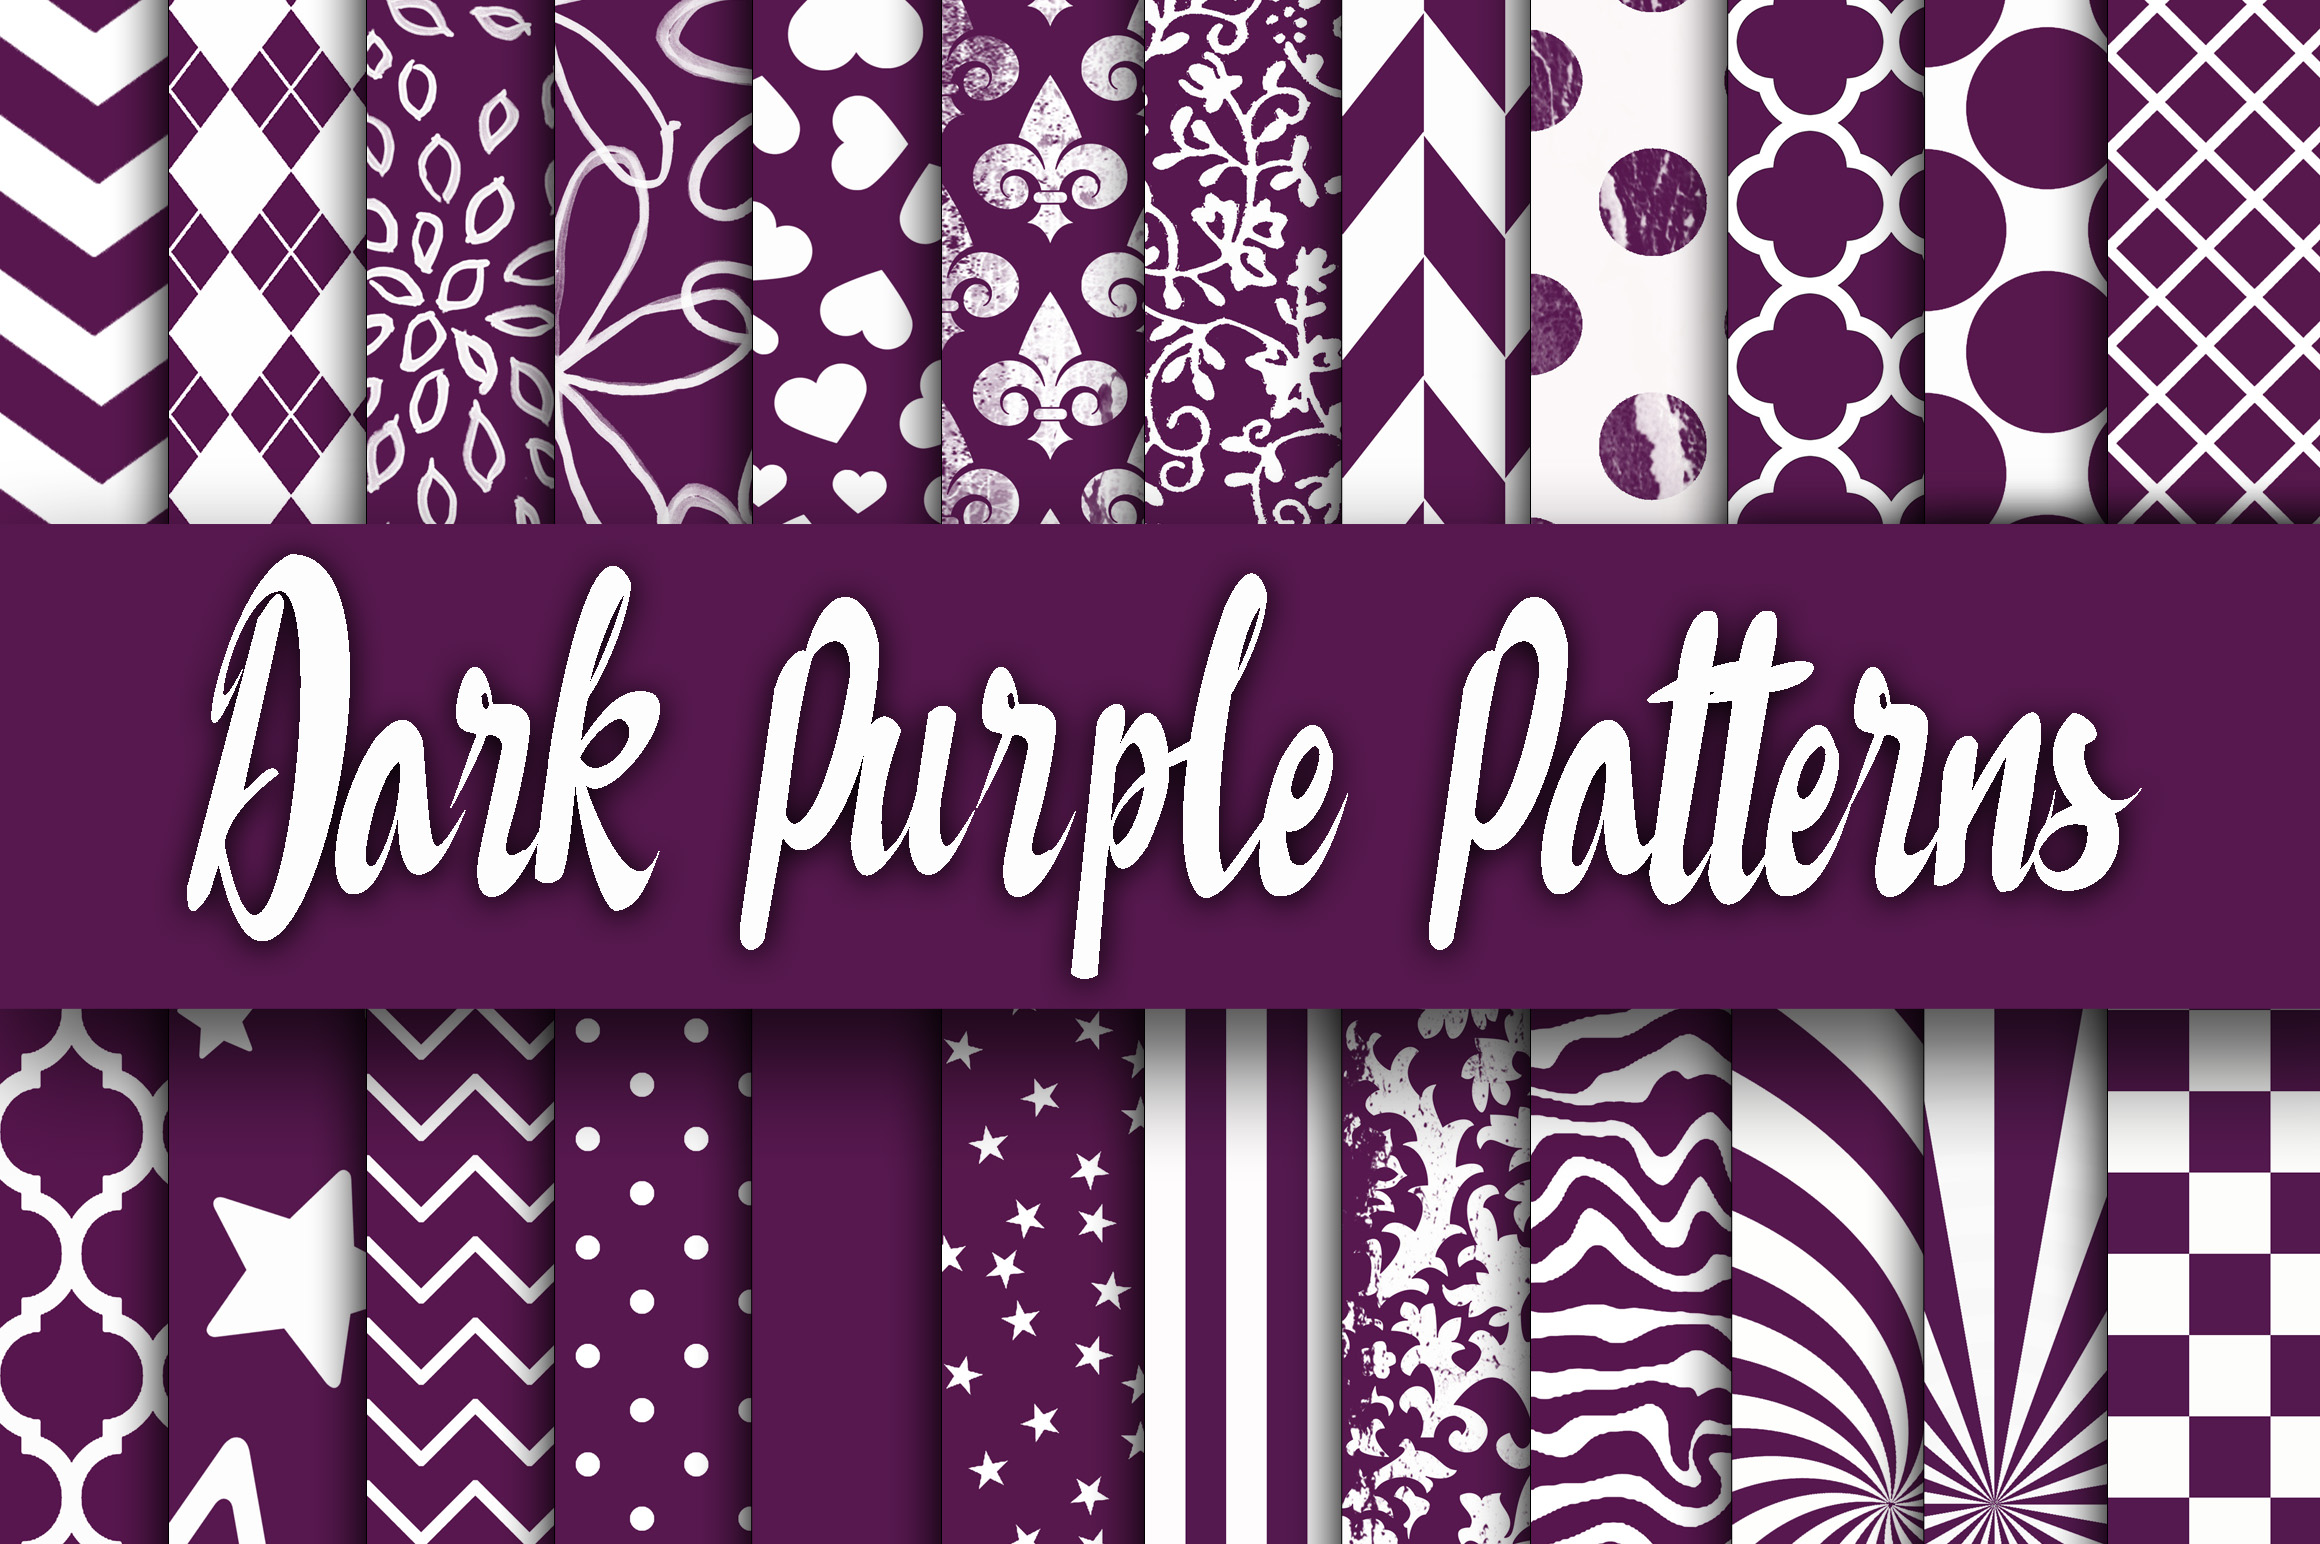 Dark Purple Patterns Digital Paper Graphic Backgrounds By oldmarketdesigns - Image 1